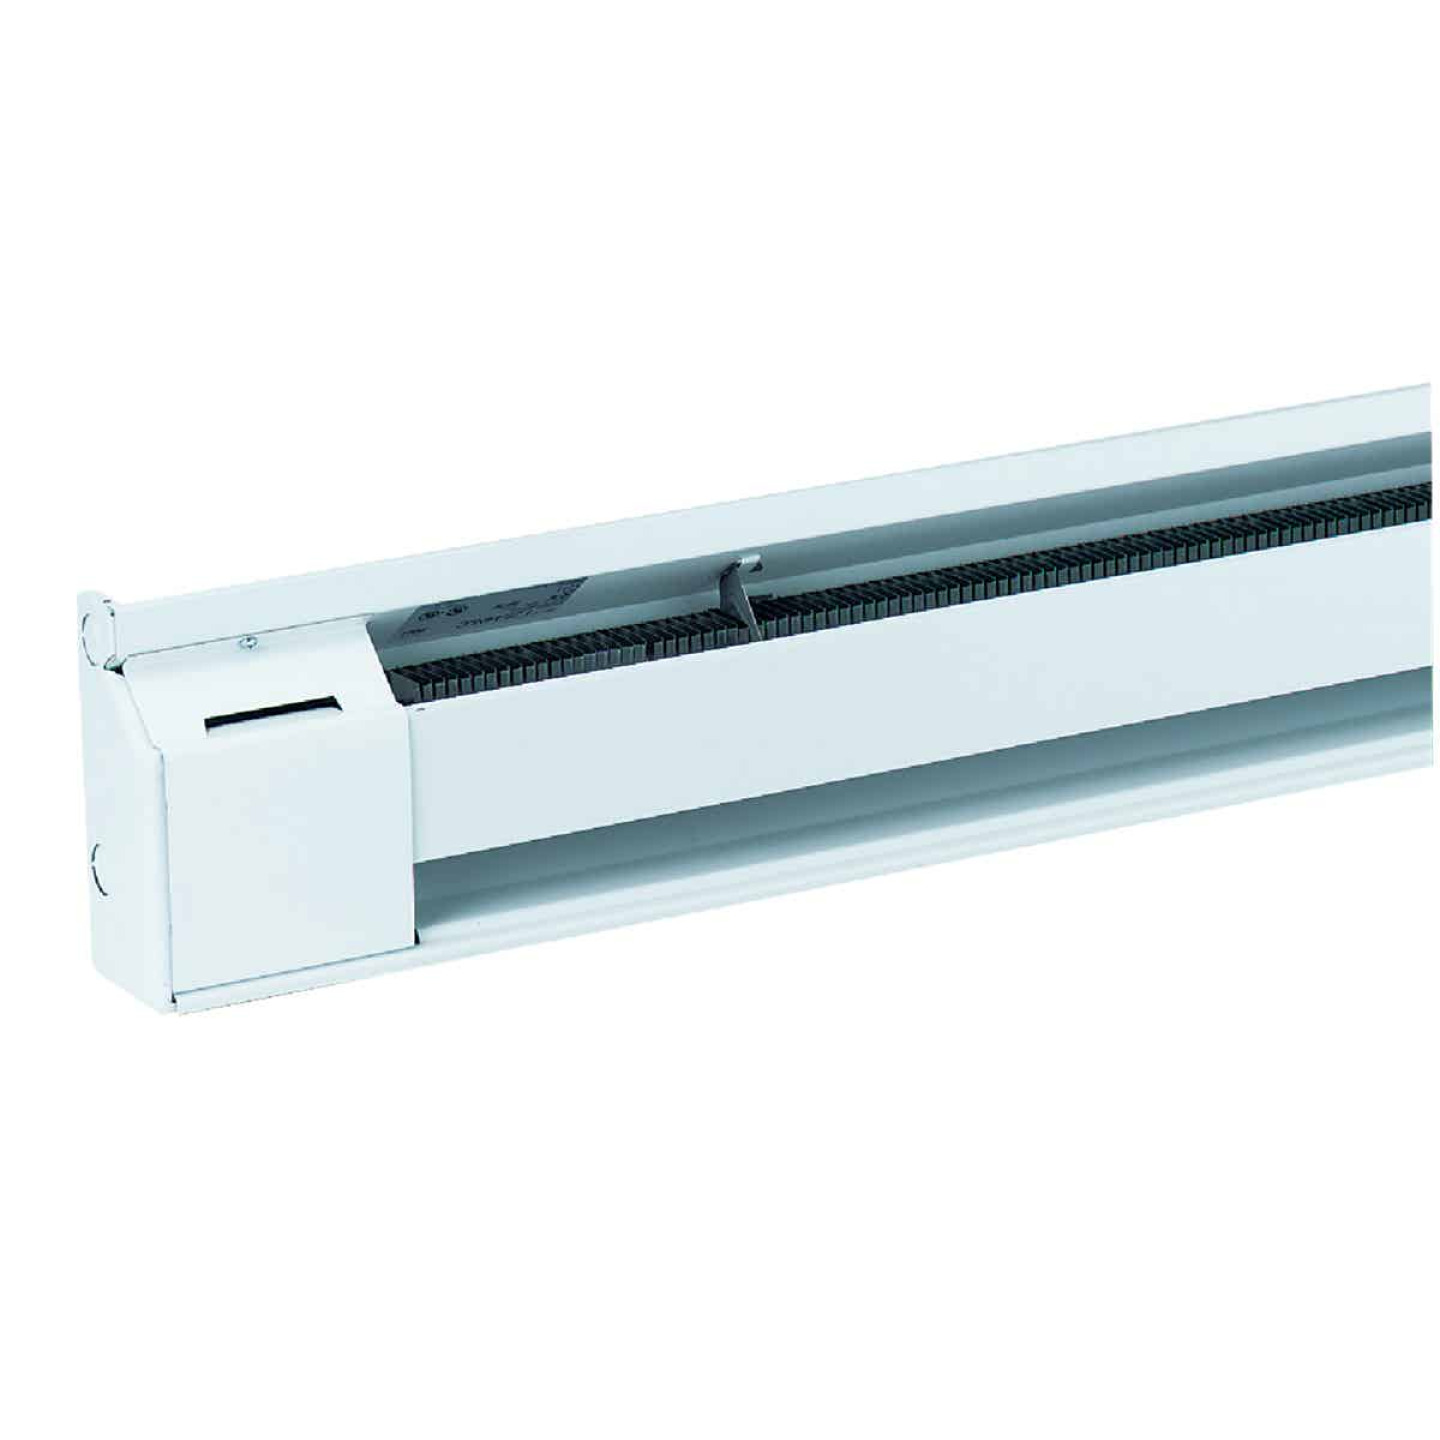 Fahrenheat 48 In. 1000-Watt 240-Volt Electric Baseboard Heater, Northern White Image 1